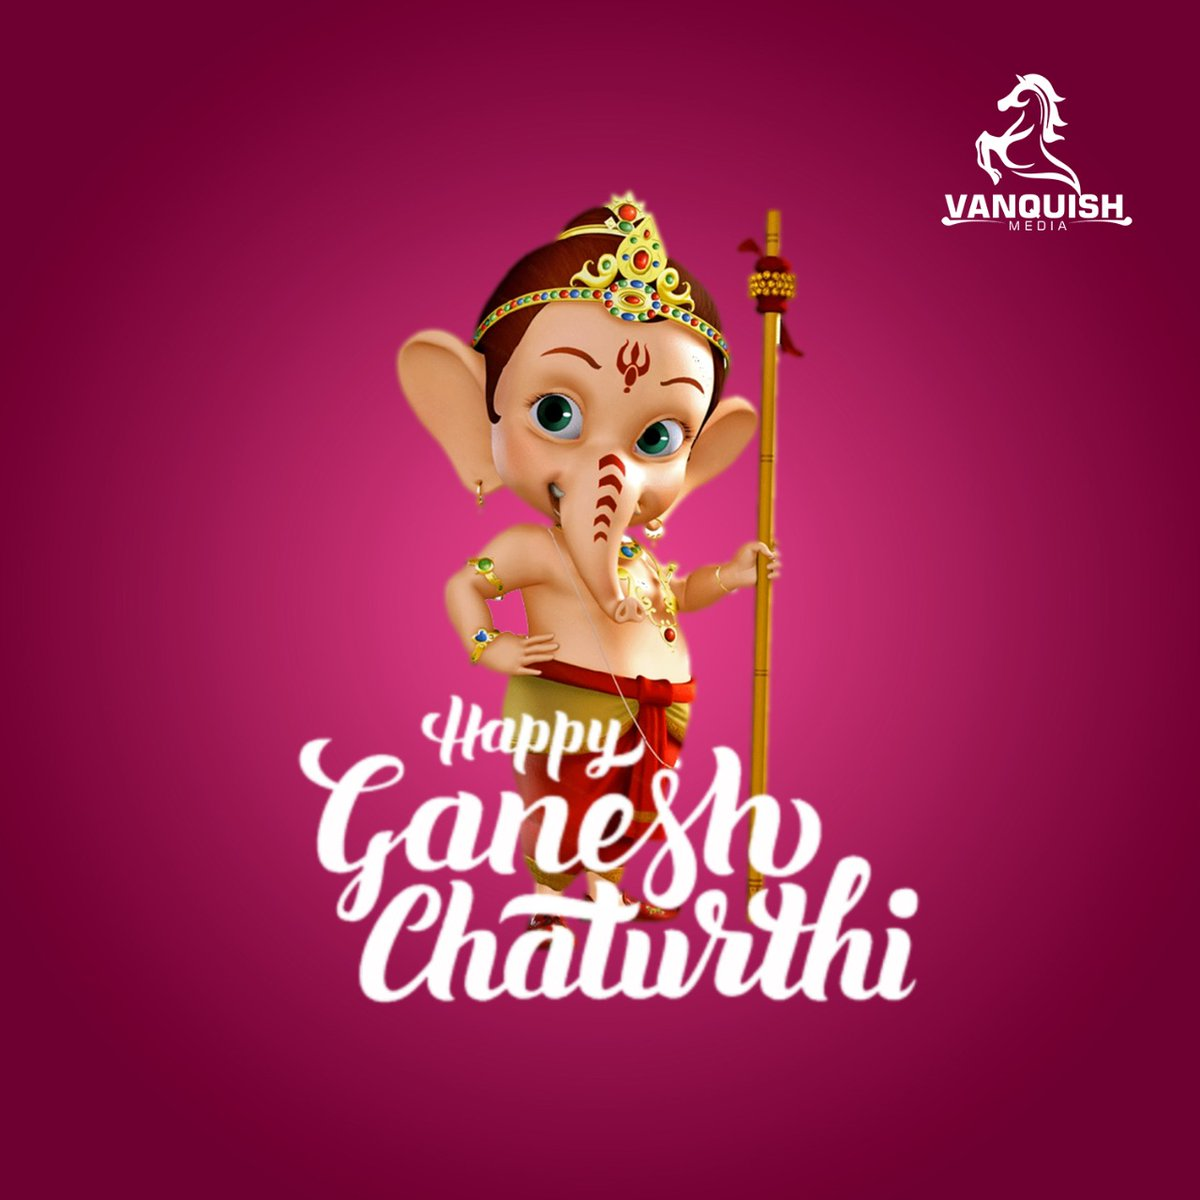 VANQUISH MEDIA Wishes You all a Happy #GaneshChaturthi !   #GanapatiBappaMorya https://t.co/8RhvXP56Xo